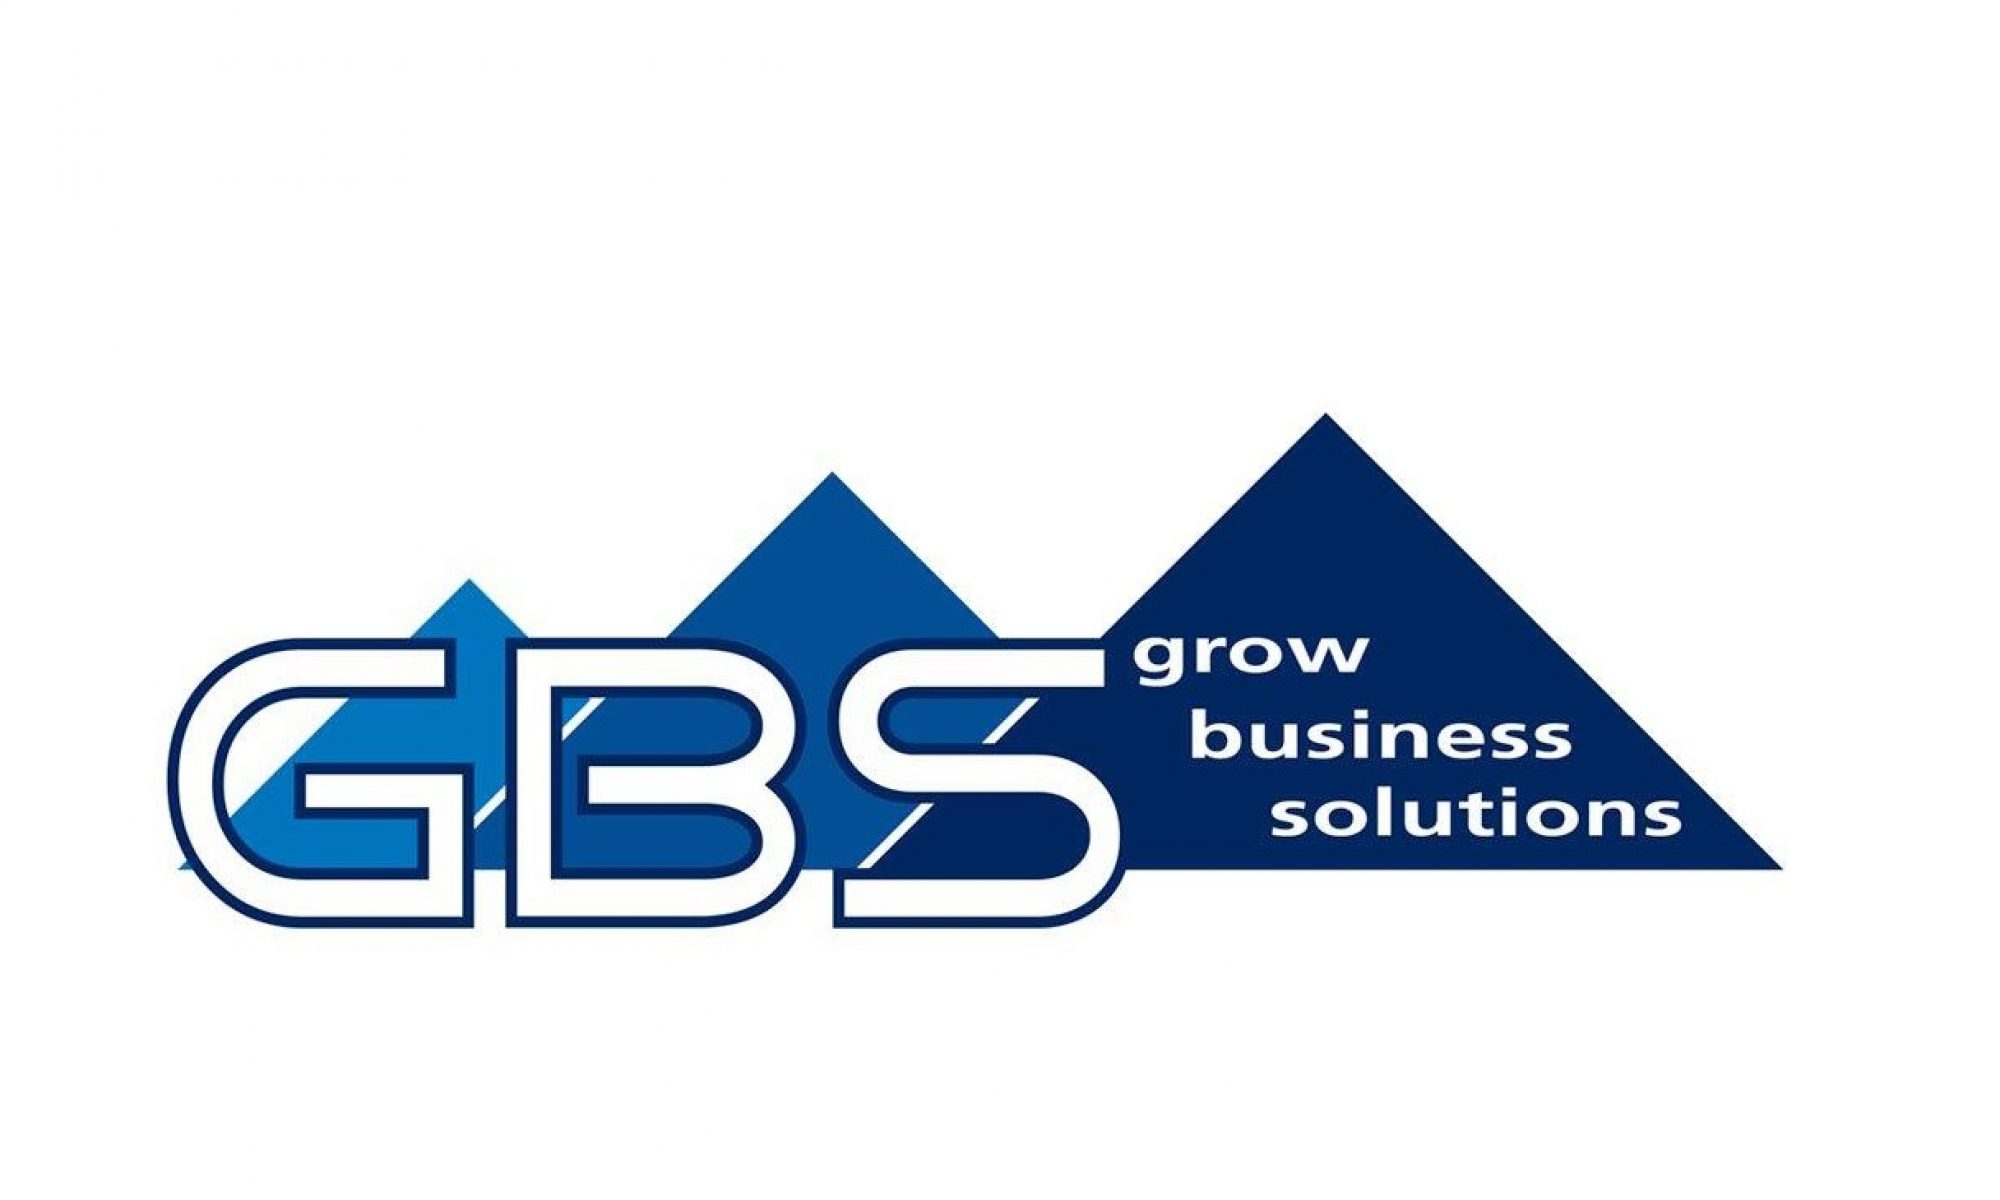 GBS - Grow Business Solutions